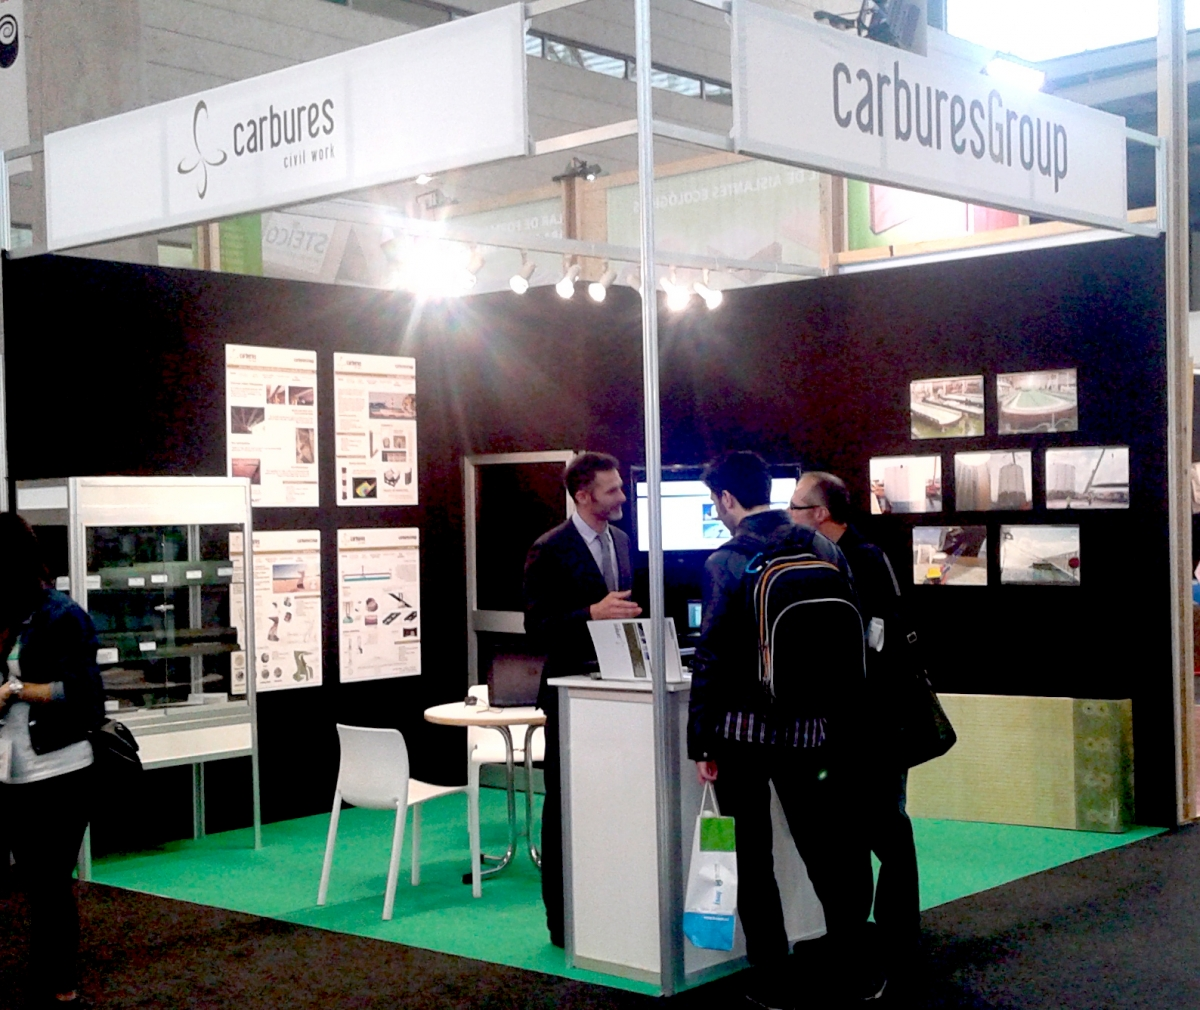 Carbures is present in Construmat